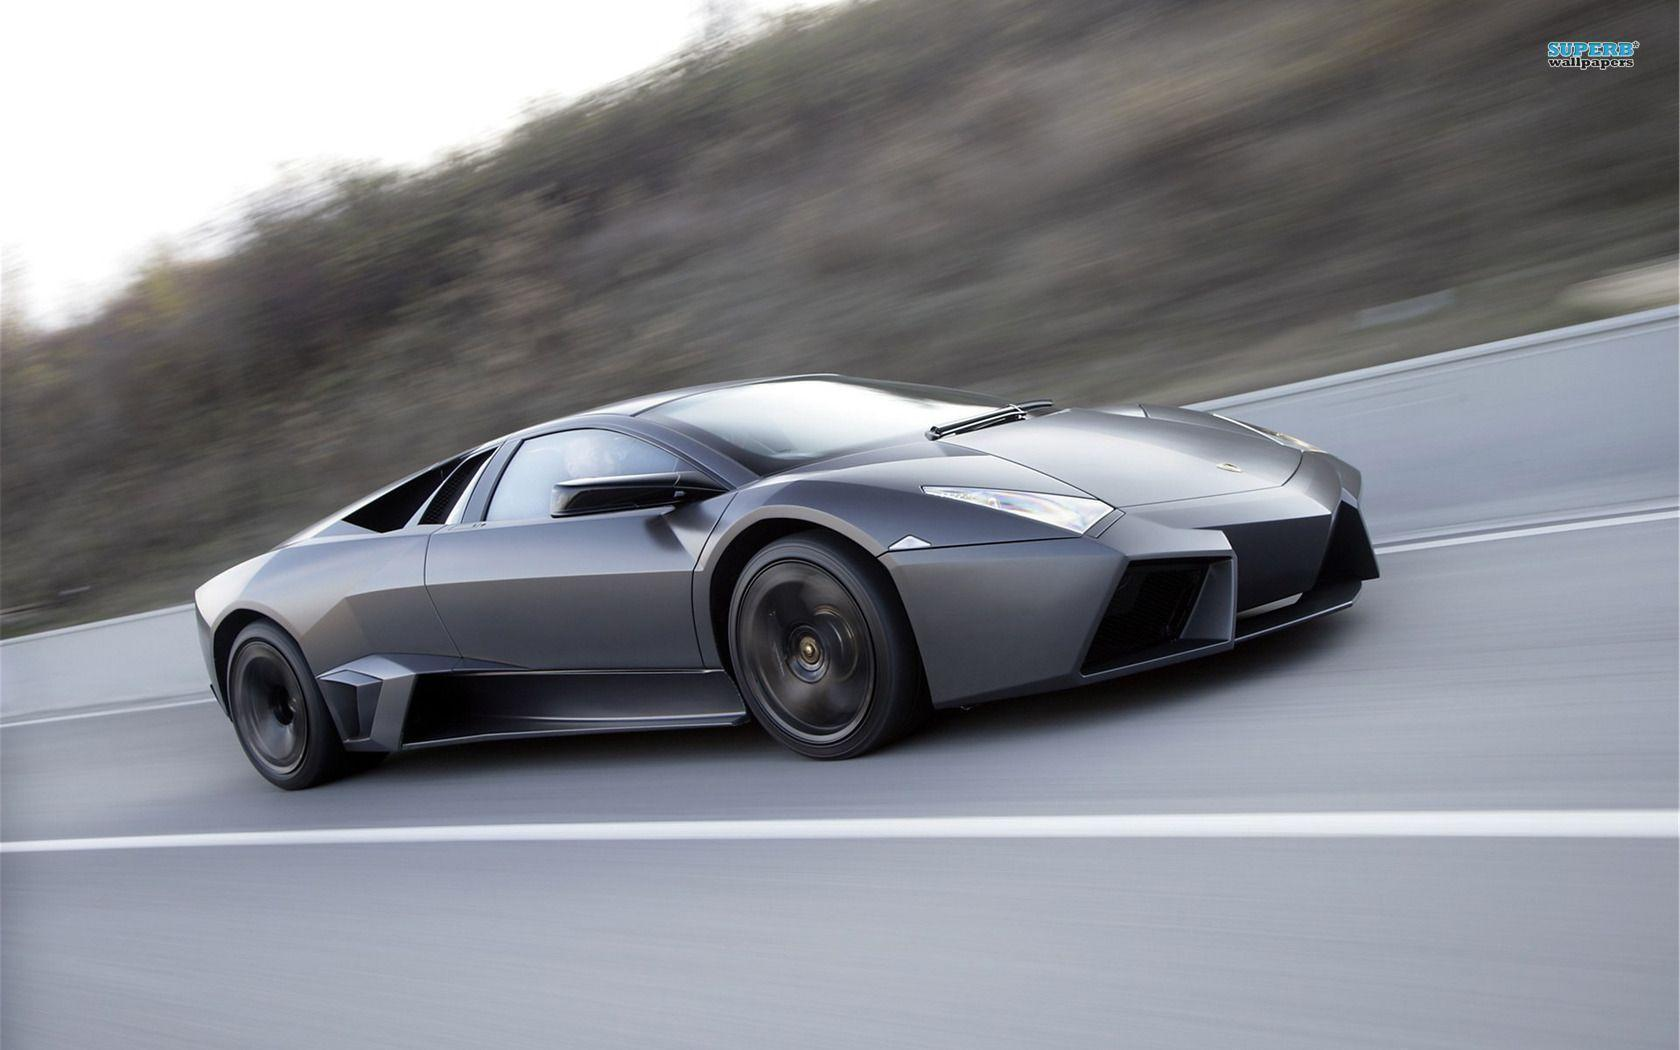 lamborghini reventon image wallpaper - photo #2